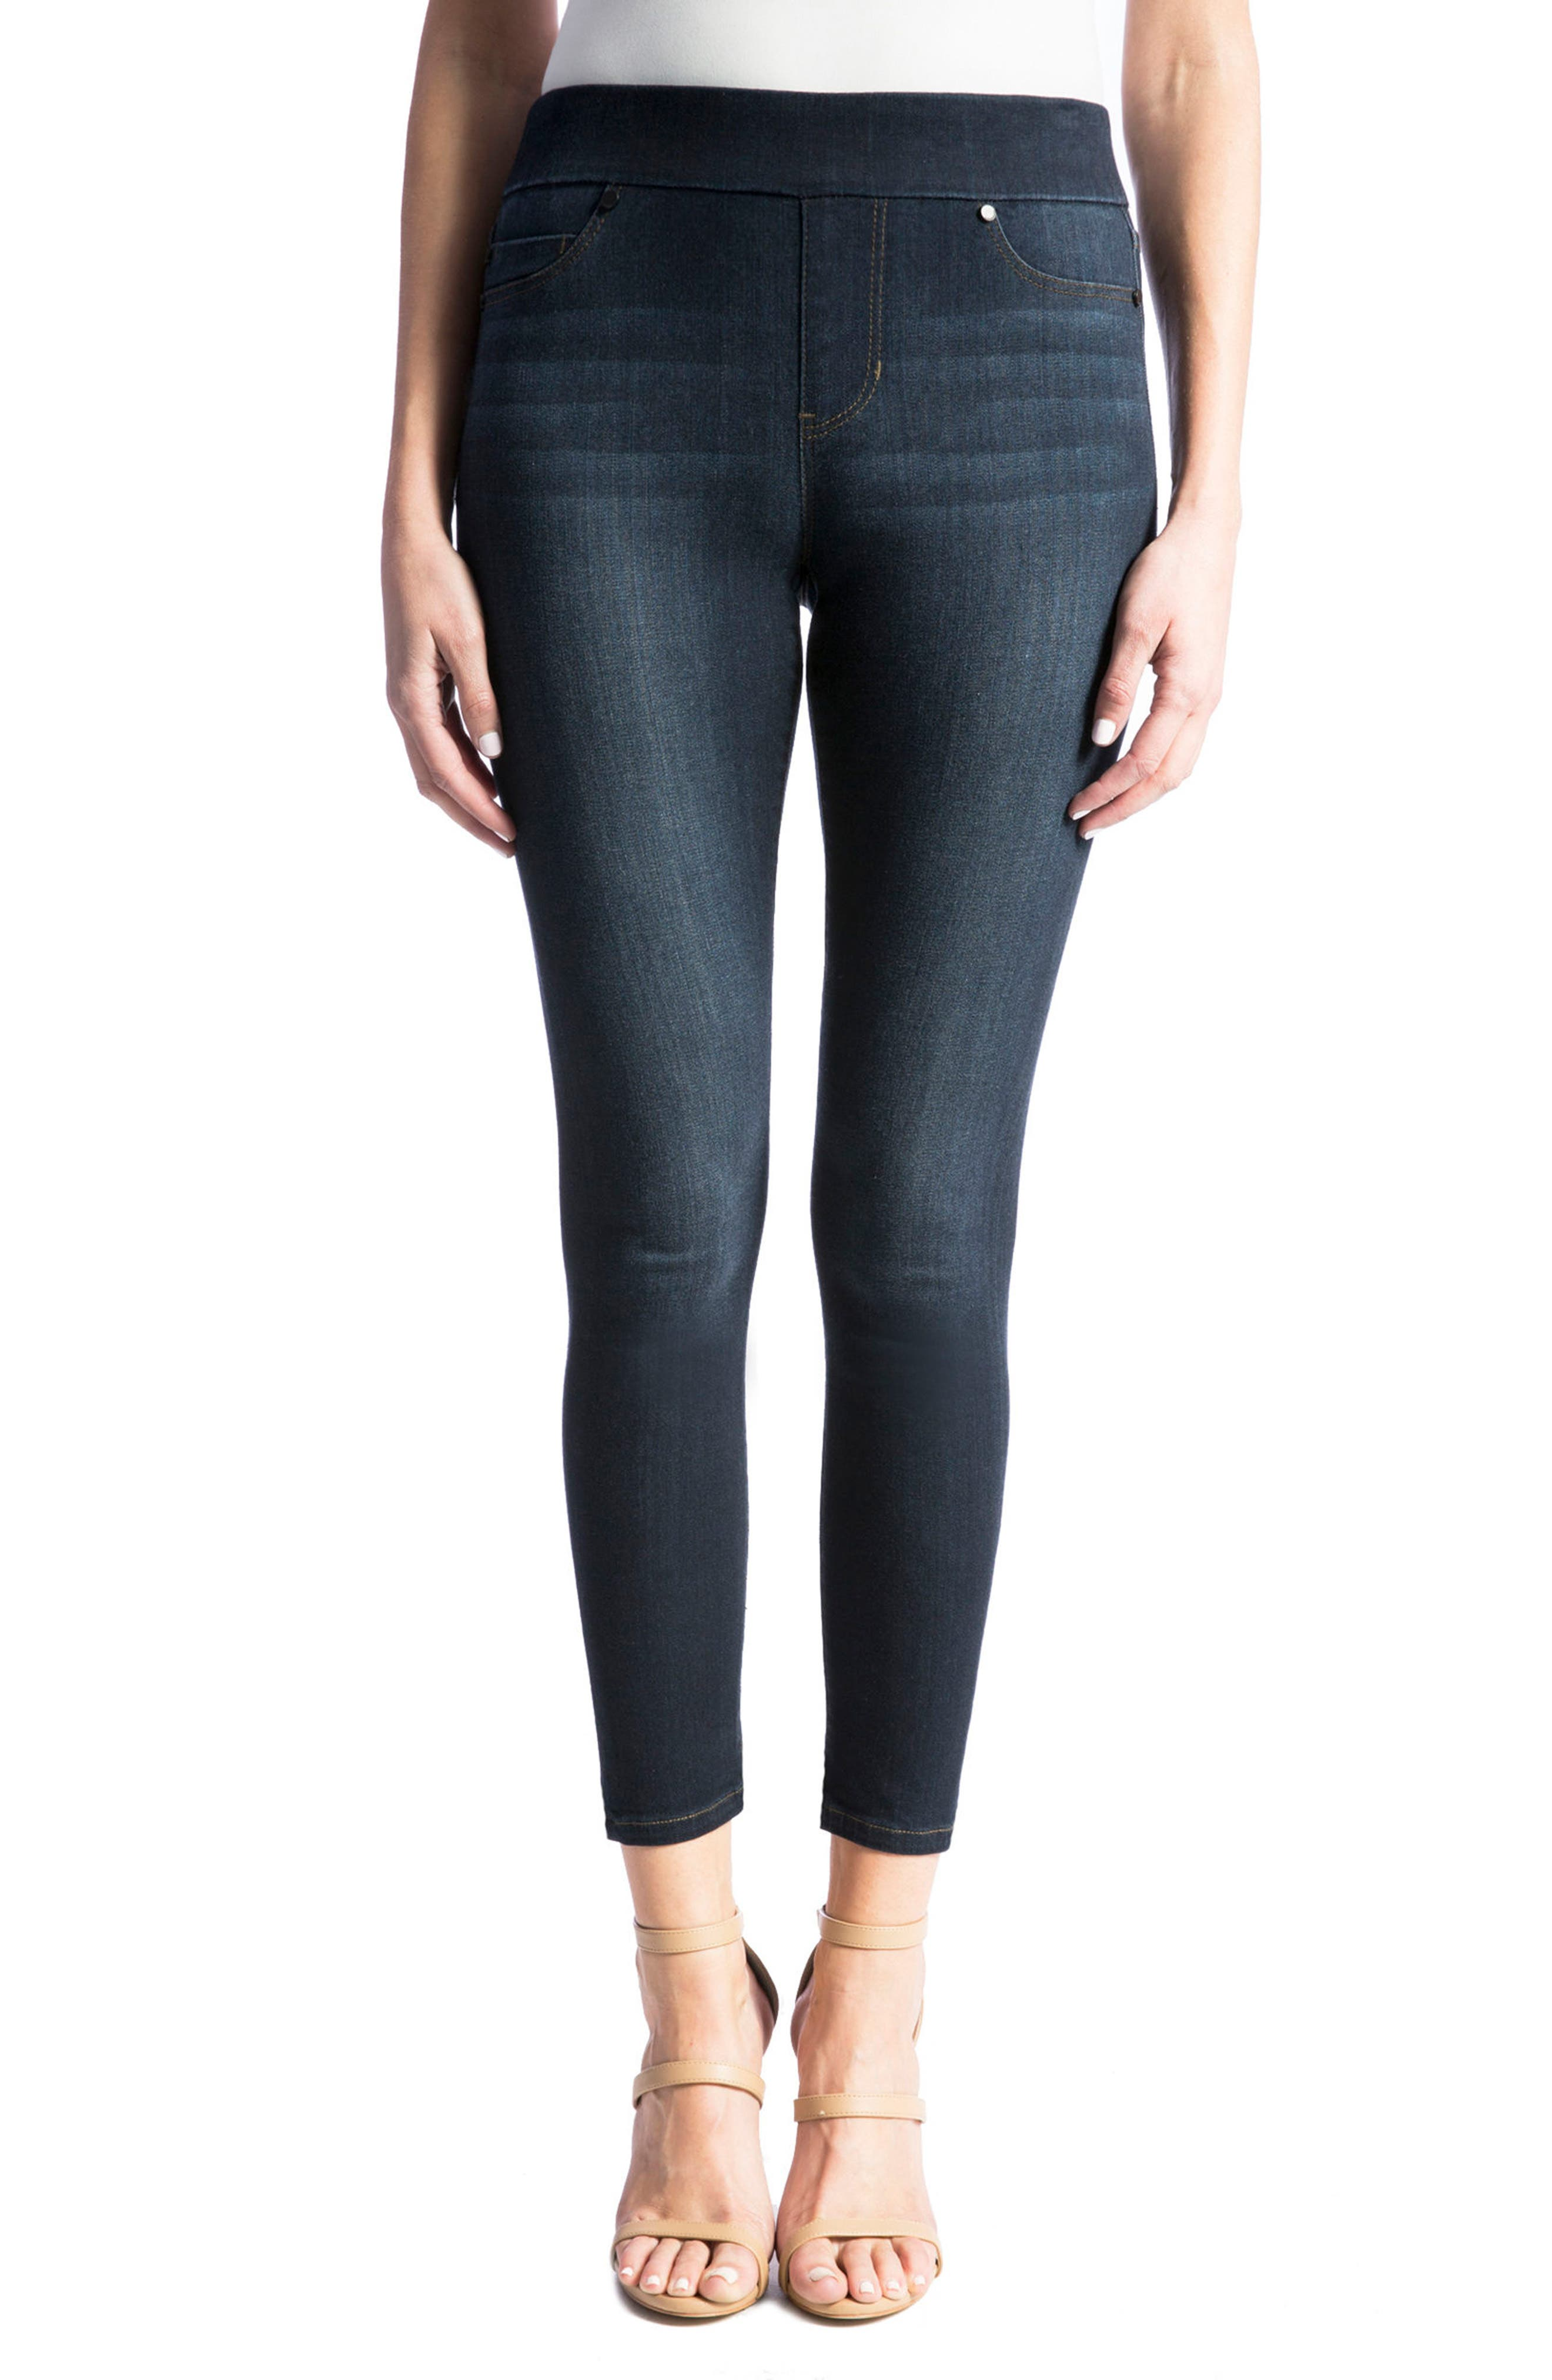 Liverpool Jeans Company High Rise Stretch Denim Ankle Leggings (Dynasty Dark) (Regular & Petite)